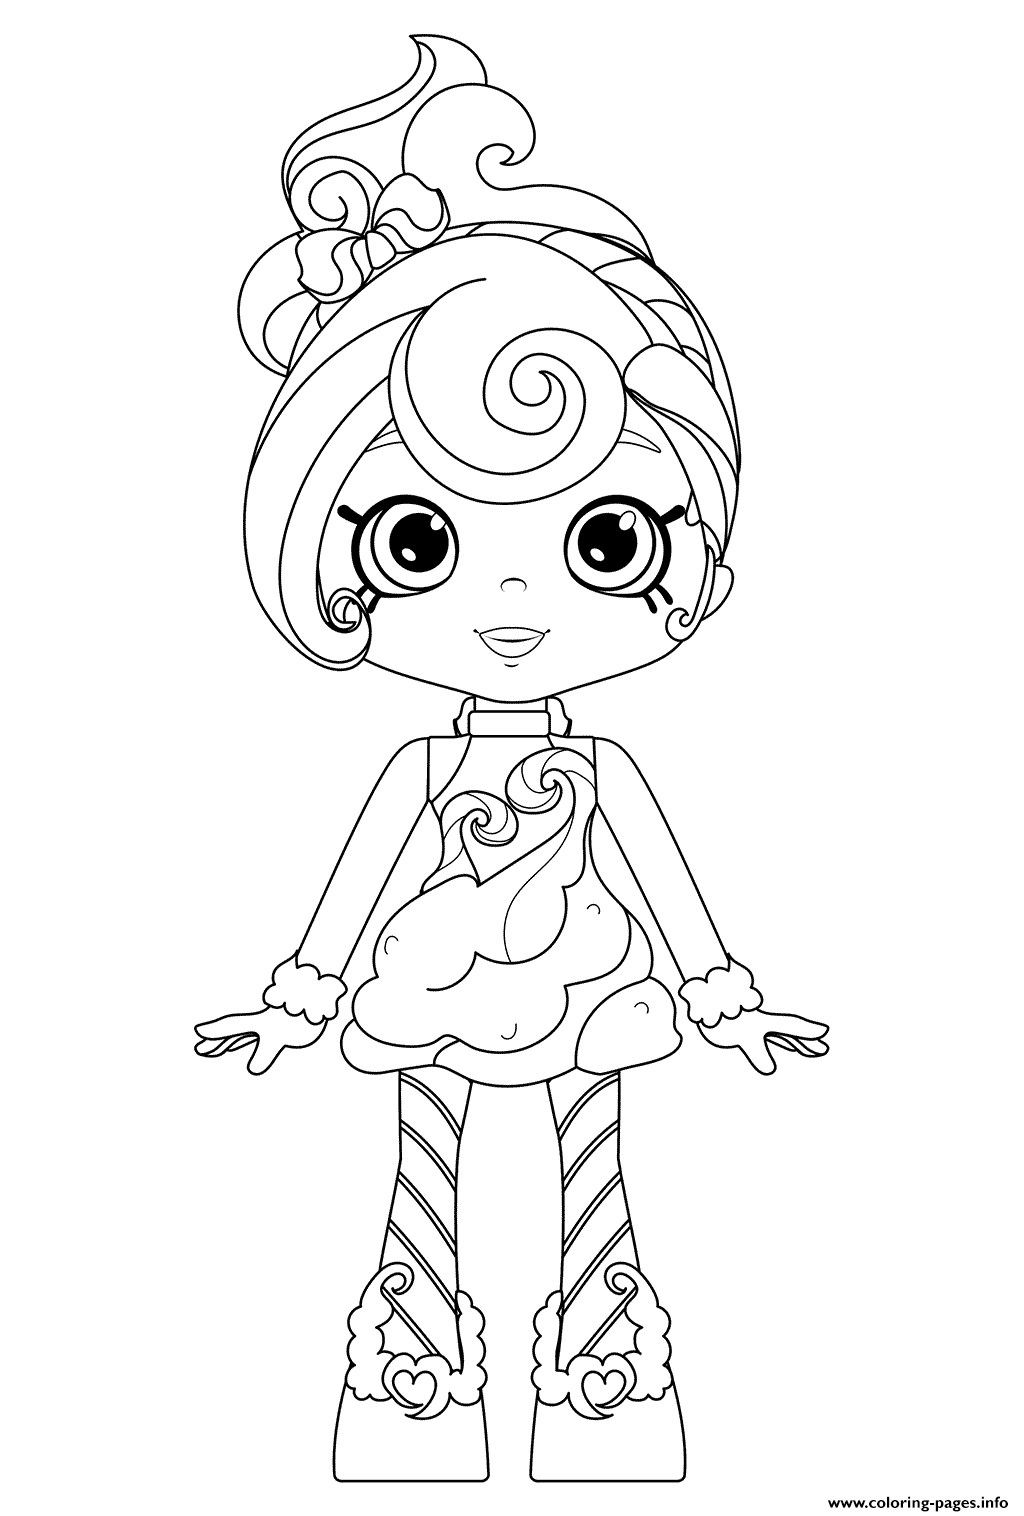 Candy Sweets Of Shoppies Coloring Pages Printable